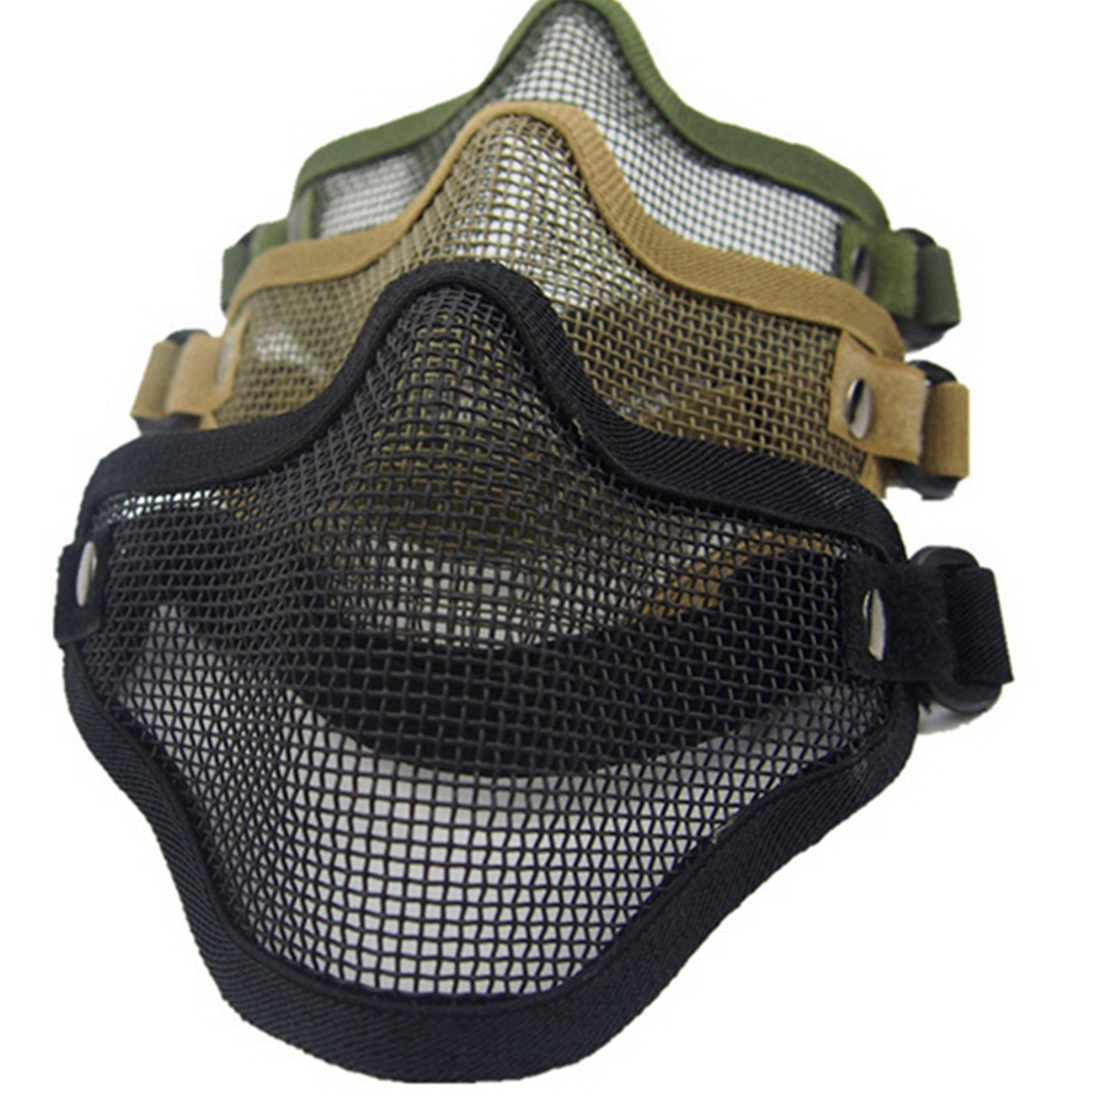 Brand New Half  Face Metal Steel Net Mesh Hunting Tactical Protective Hot Airsoft Mask For Military Paintball Hunting Airsoft